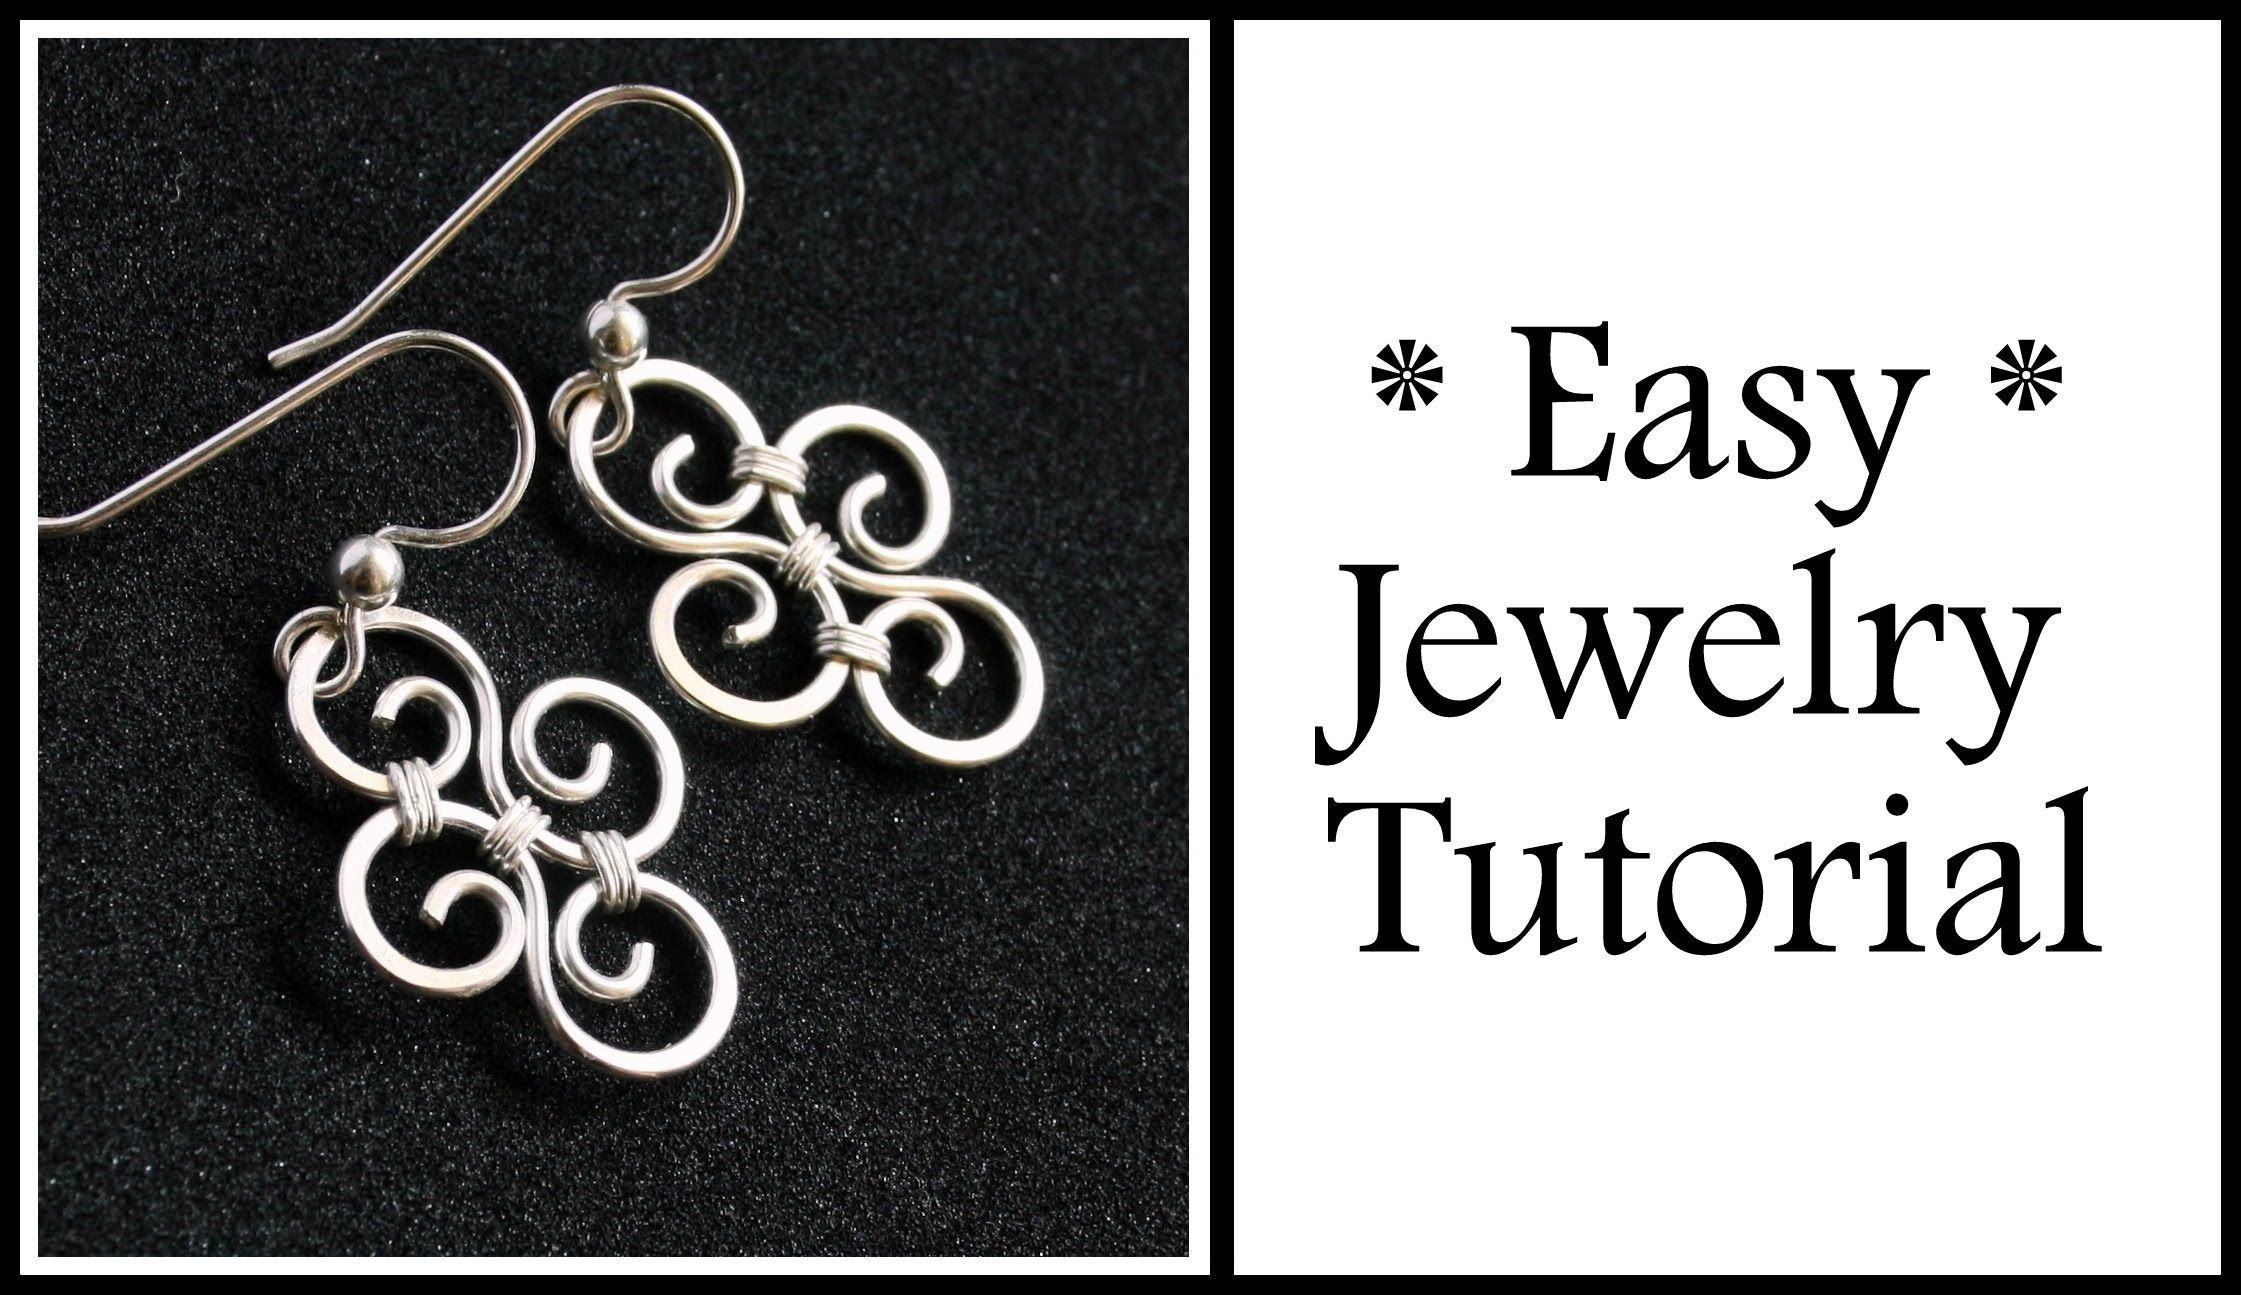 Easy Jewelry Tutorial Simple Swirl Earrings Wire Wrapping For Beginners Easy Jewelry Wire Wrapped Jewelry Tutorials Diy Wire Jewelry